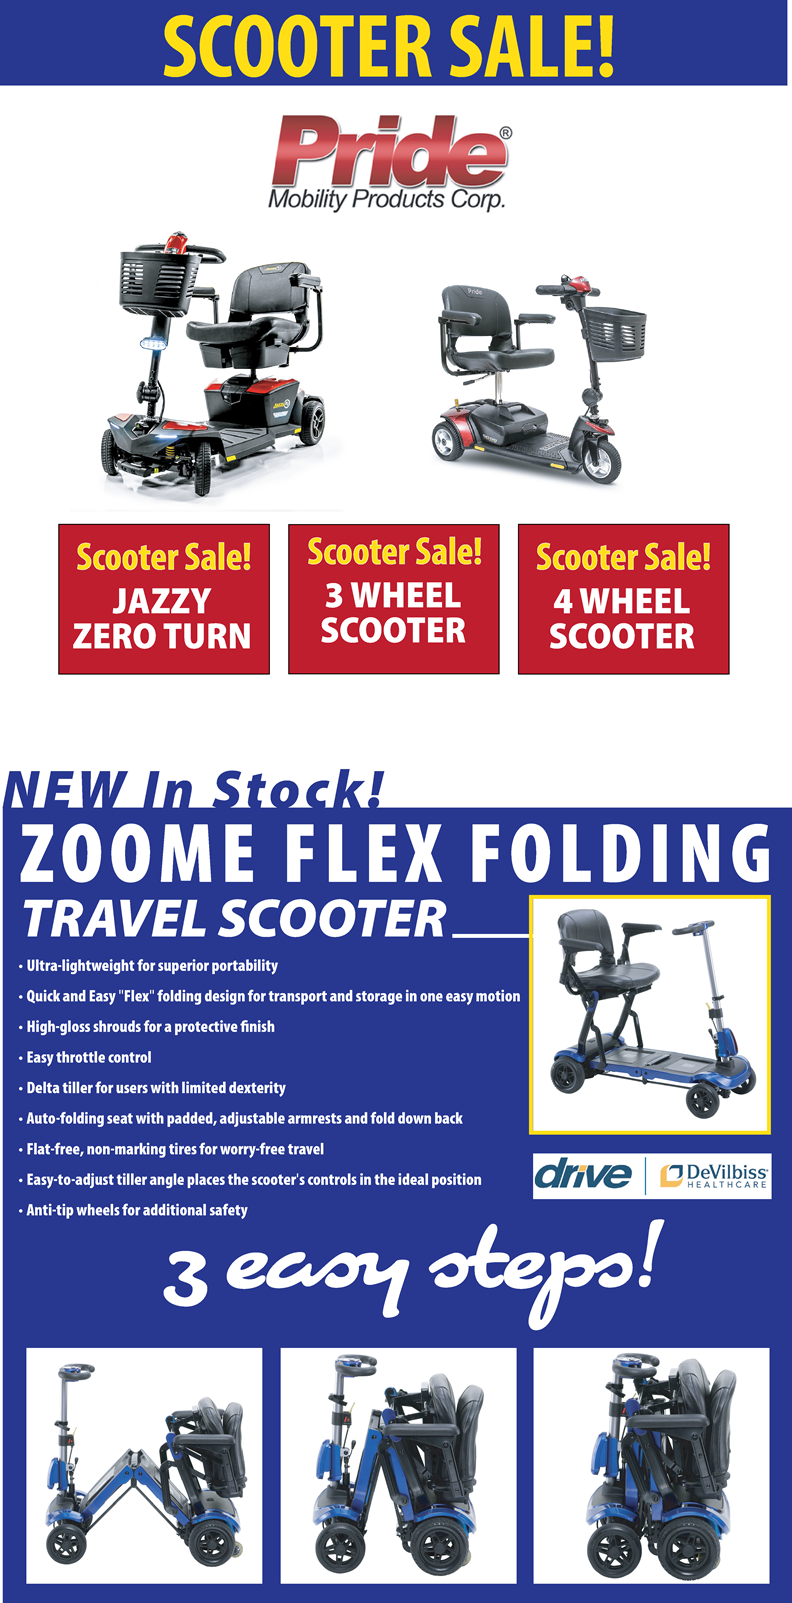 scooter web page